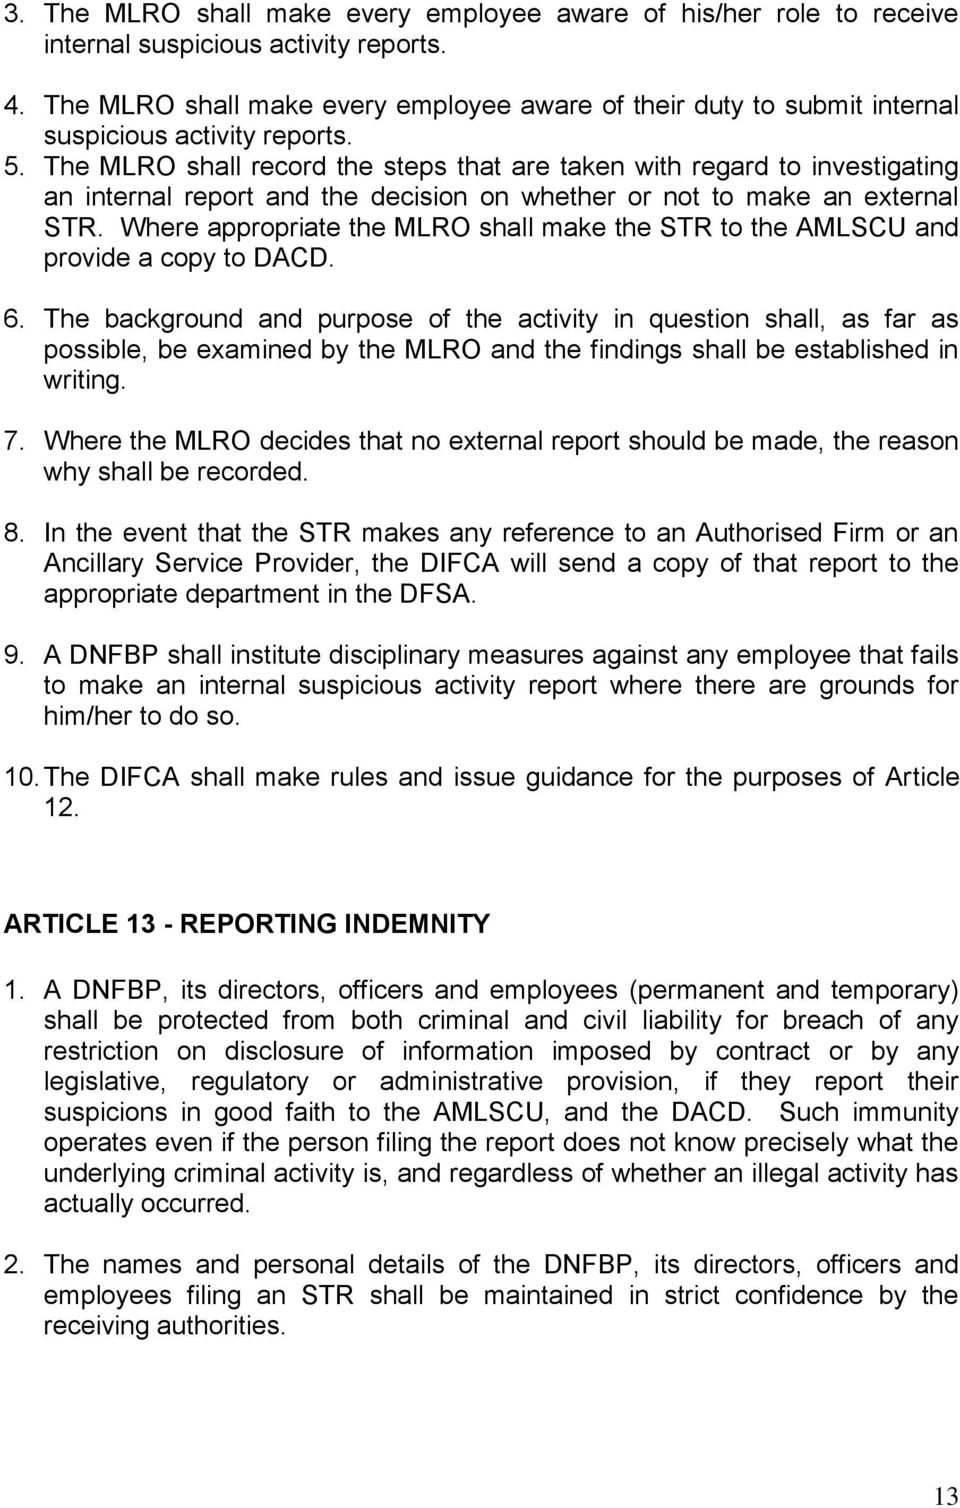 The MLRO shall record the steps that are taken with regard to investigating an internal report and the decision on whether or not to make an external STR.